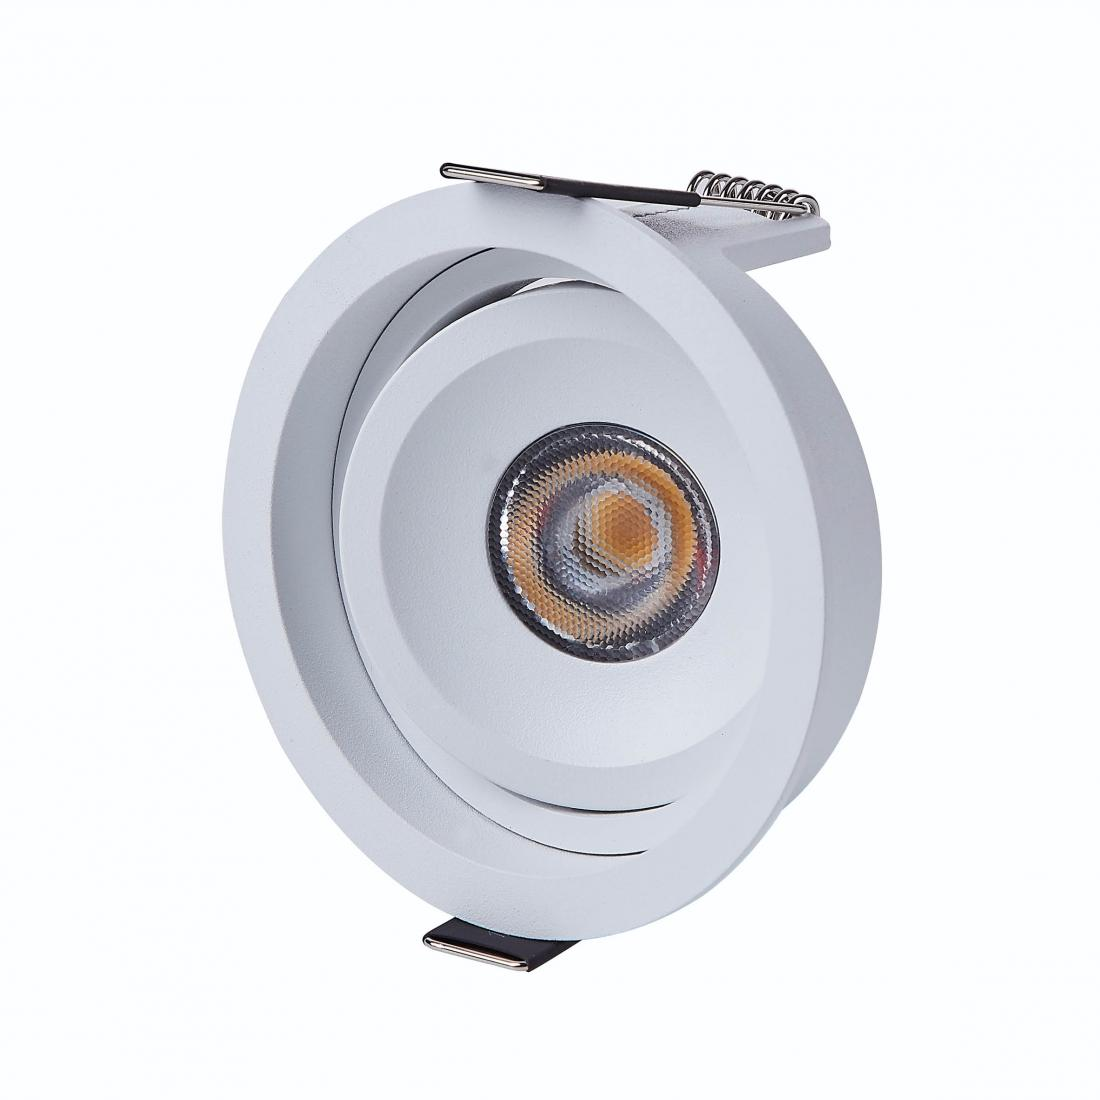 Nordic smart adjustable 7watt led cob spot downlight with different height